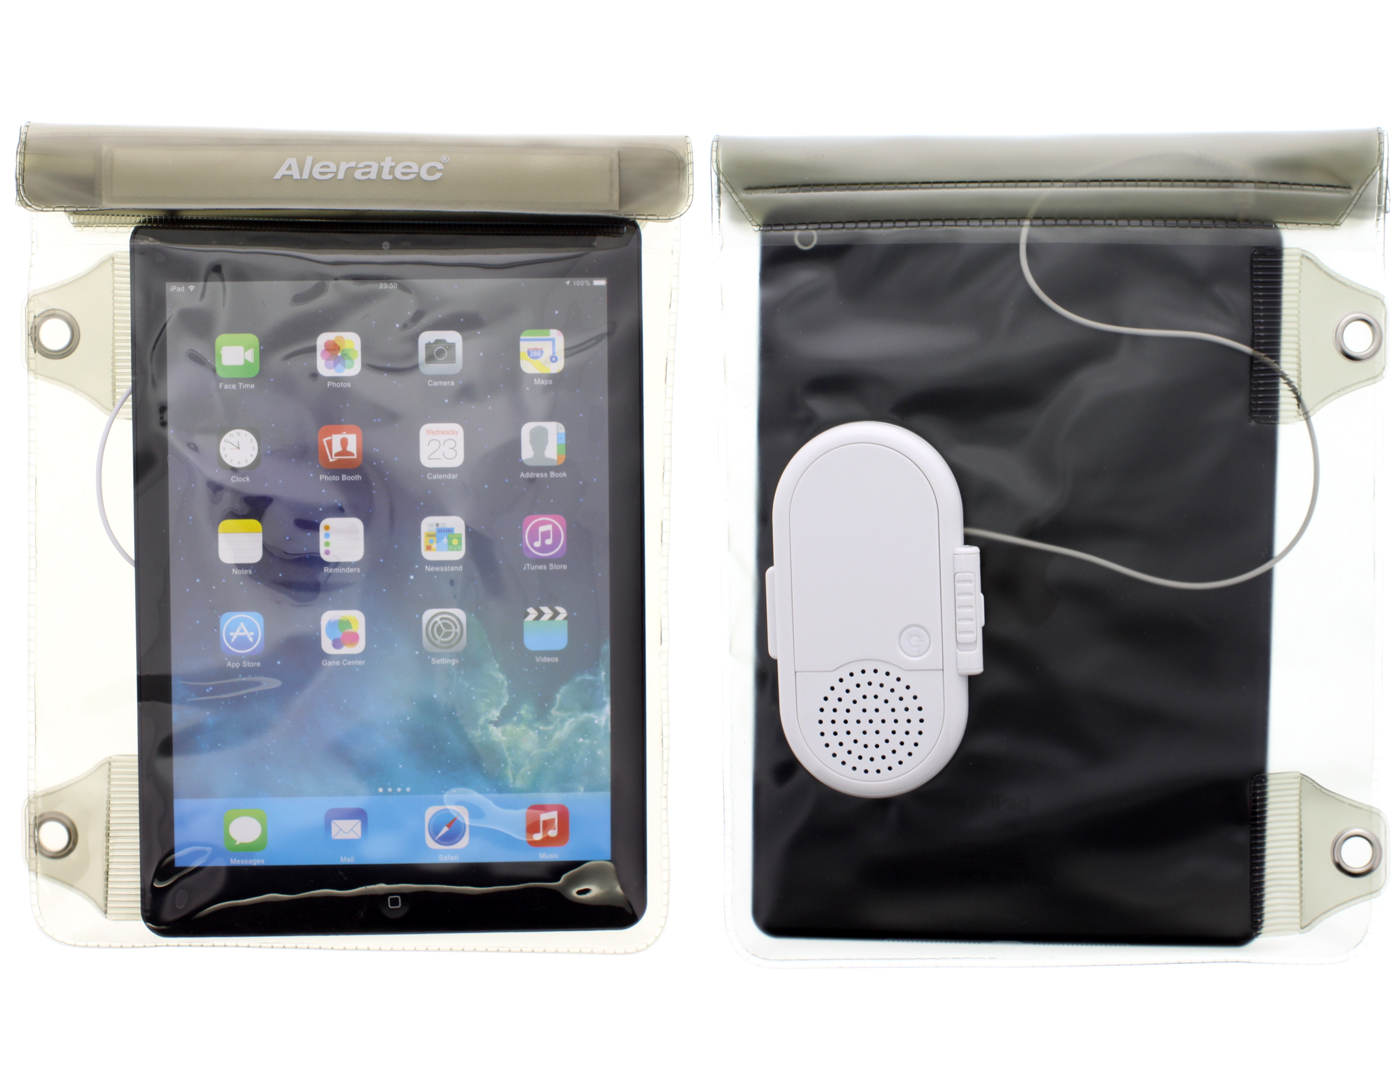 f3957d9aa108 Aleratec Water-resistant Dry Bag Pouch with Speaker for iPad